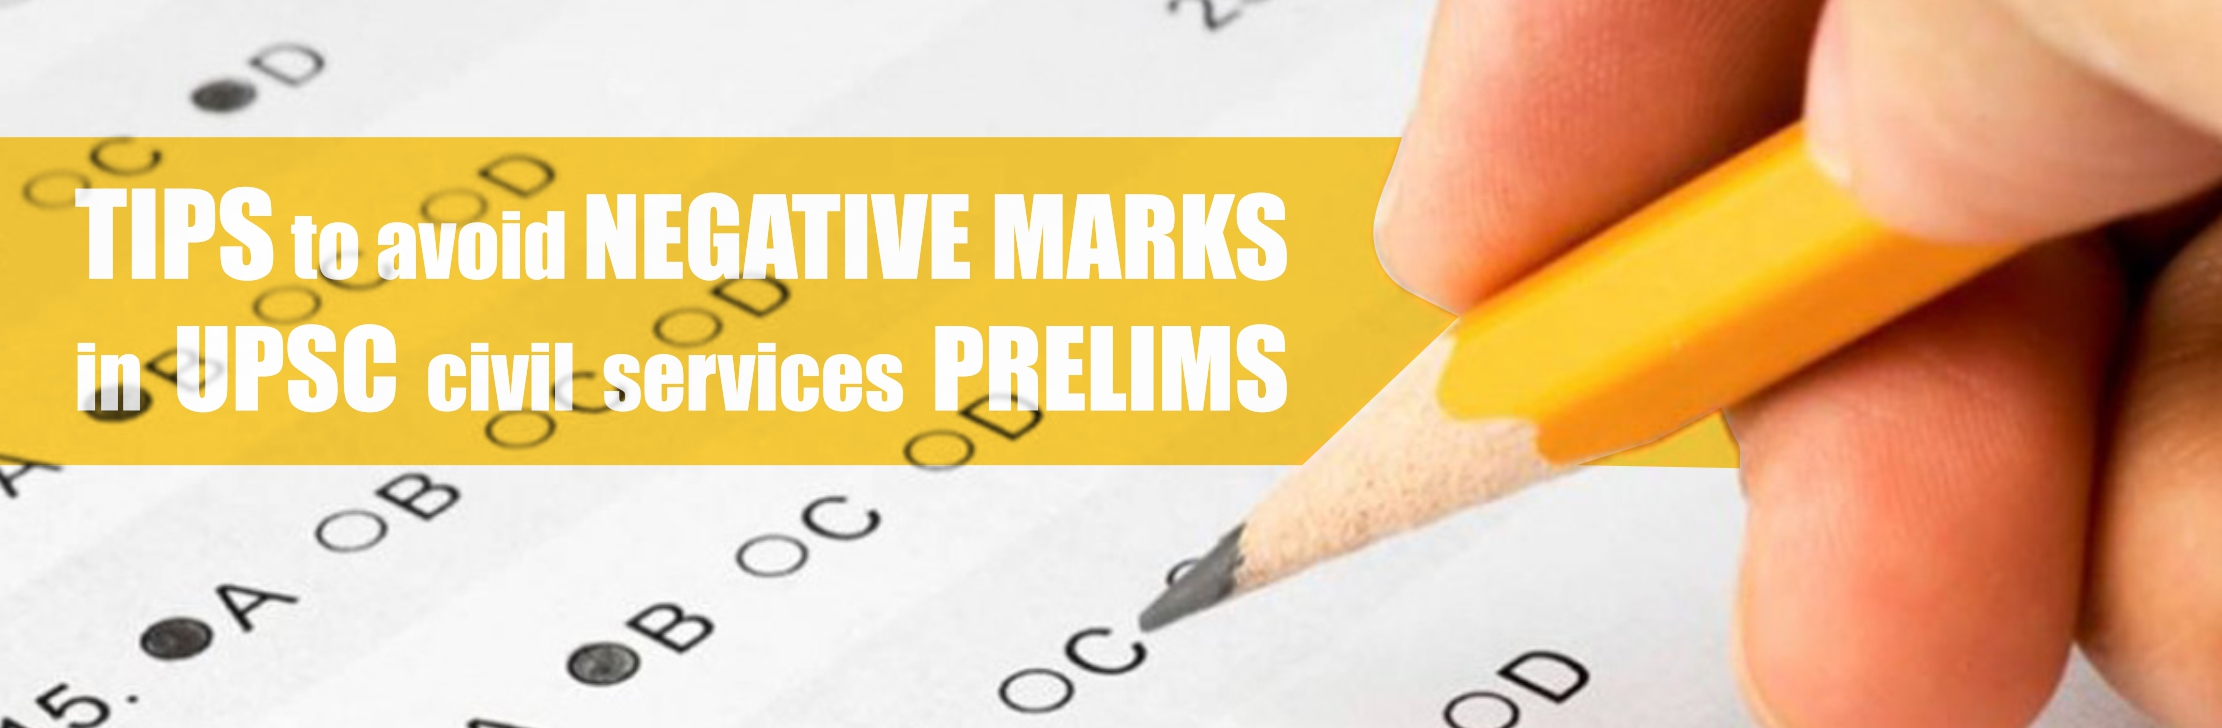 Tips to avoid negative marks in UPSC civil services prelims